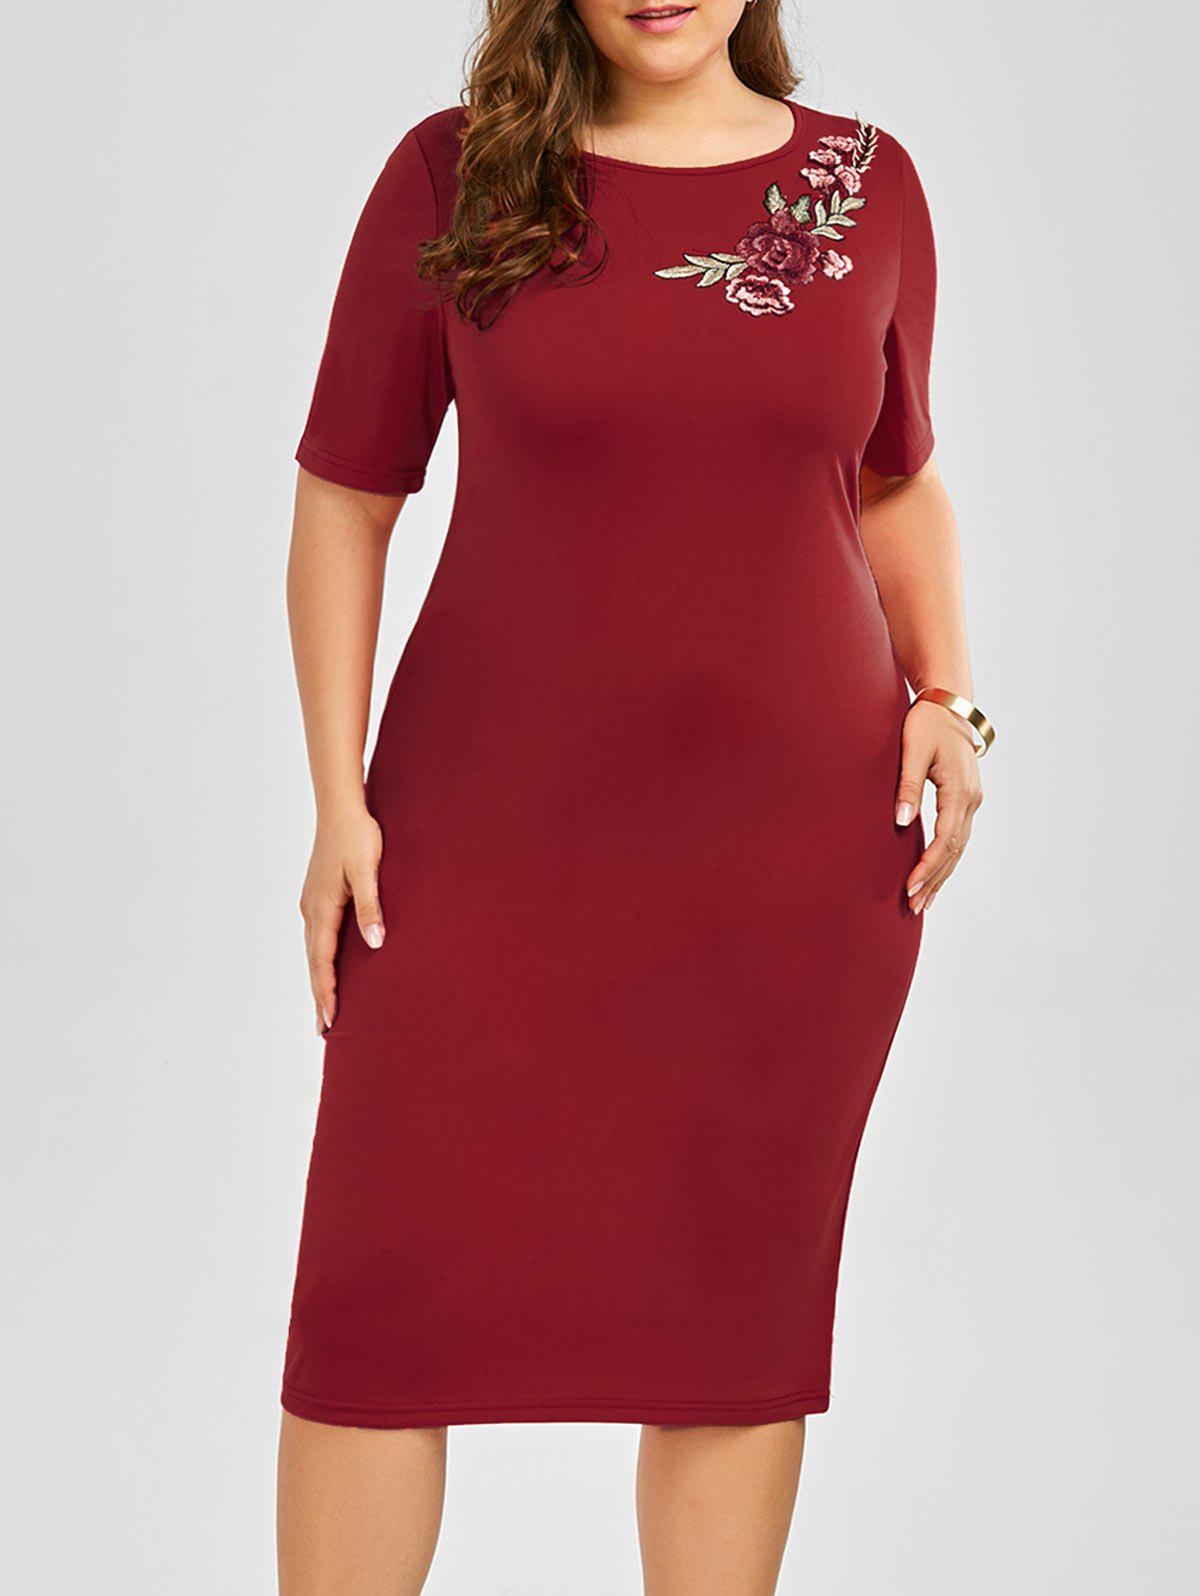 Plus Size Embroidered Embellished Midi Sheath Dress - WINE RED 5XL